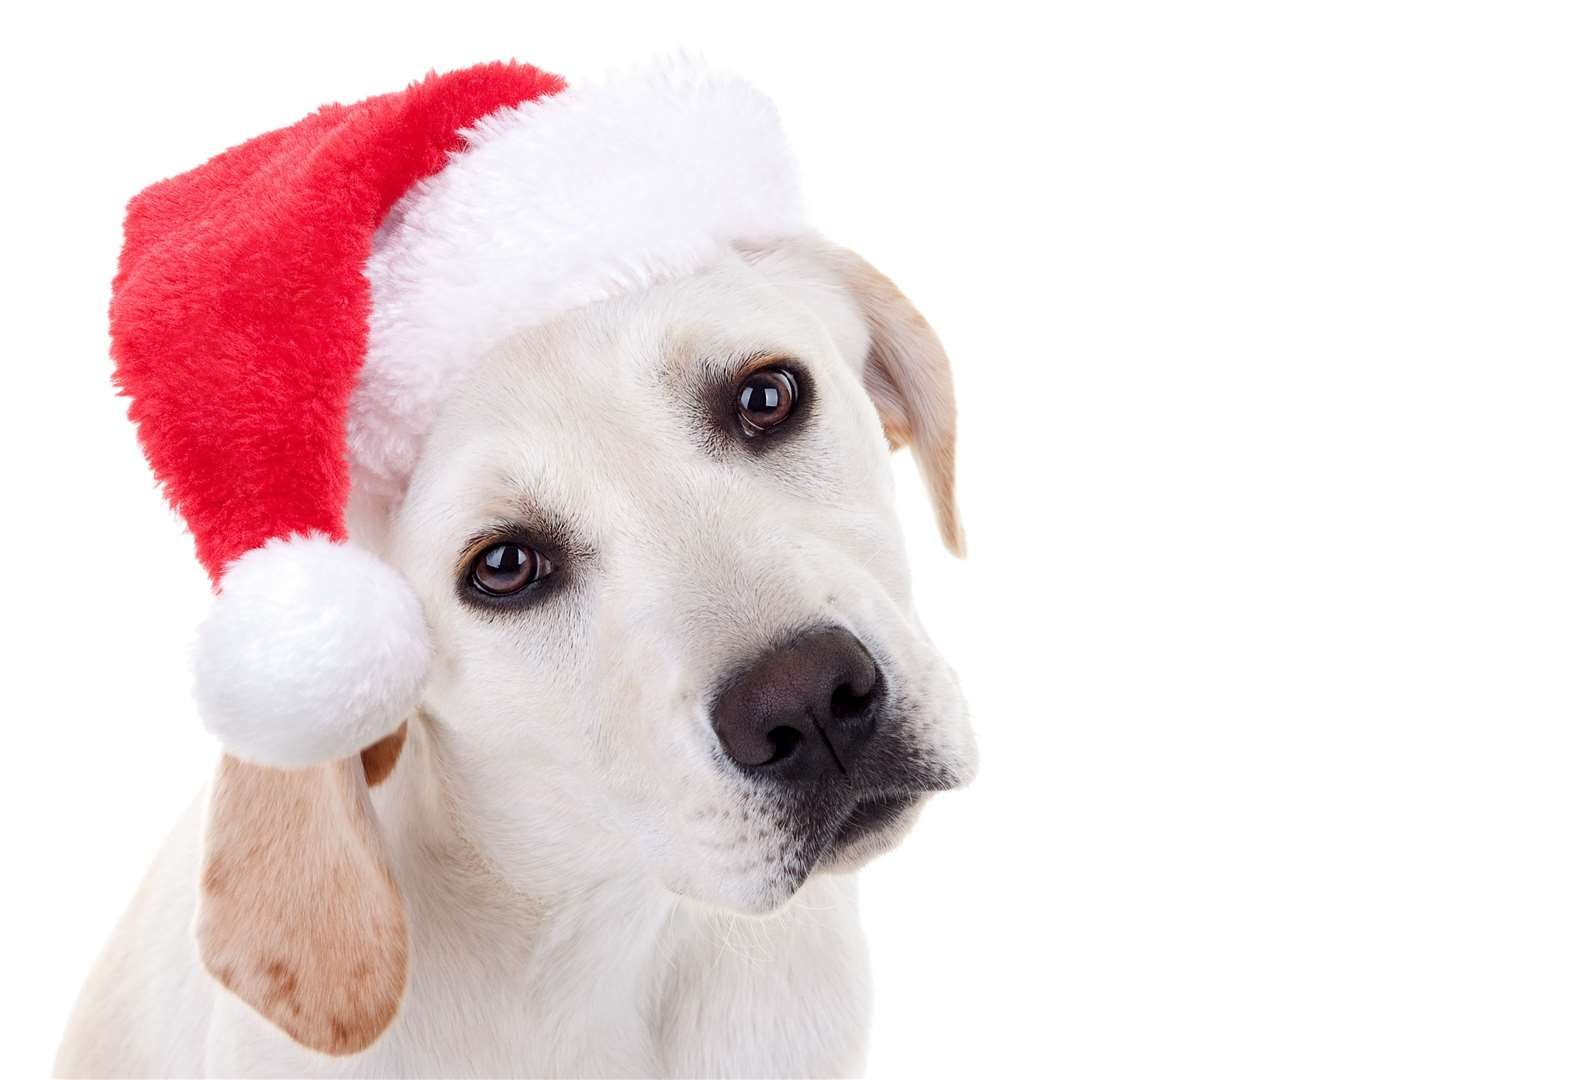 Santa Paws set to get tails wagging